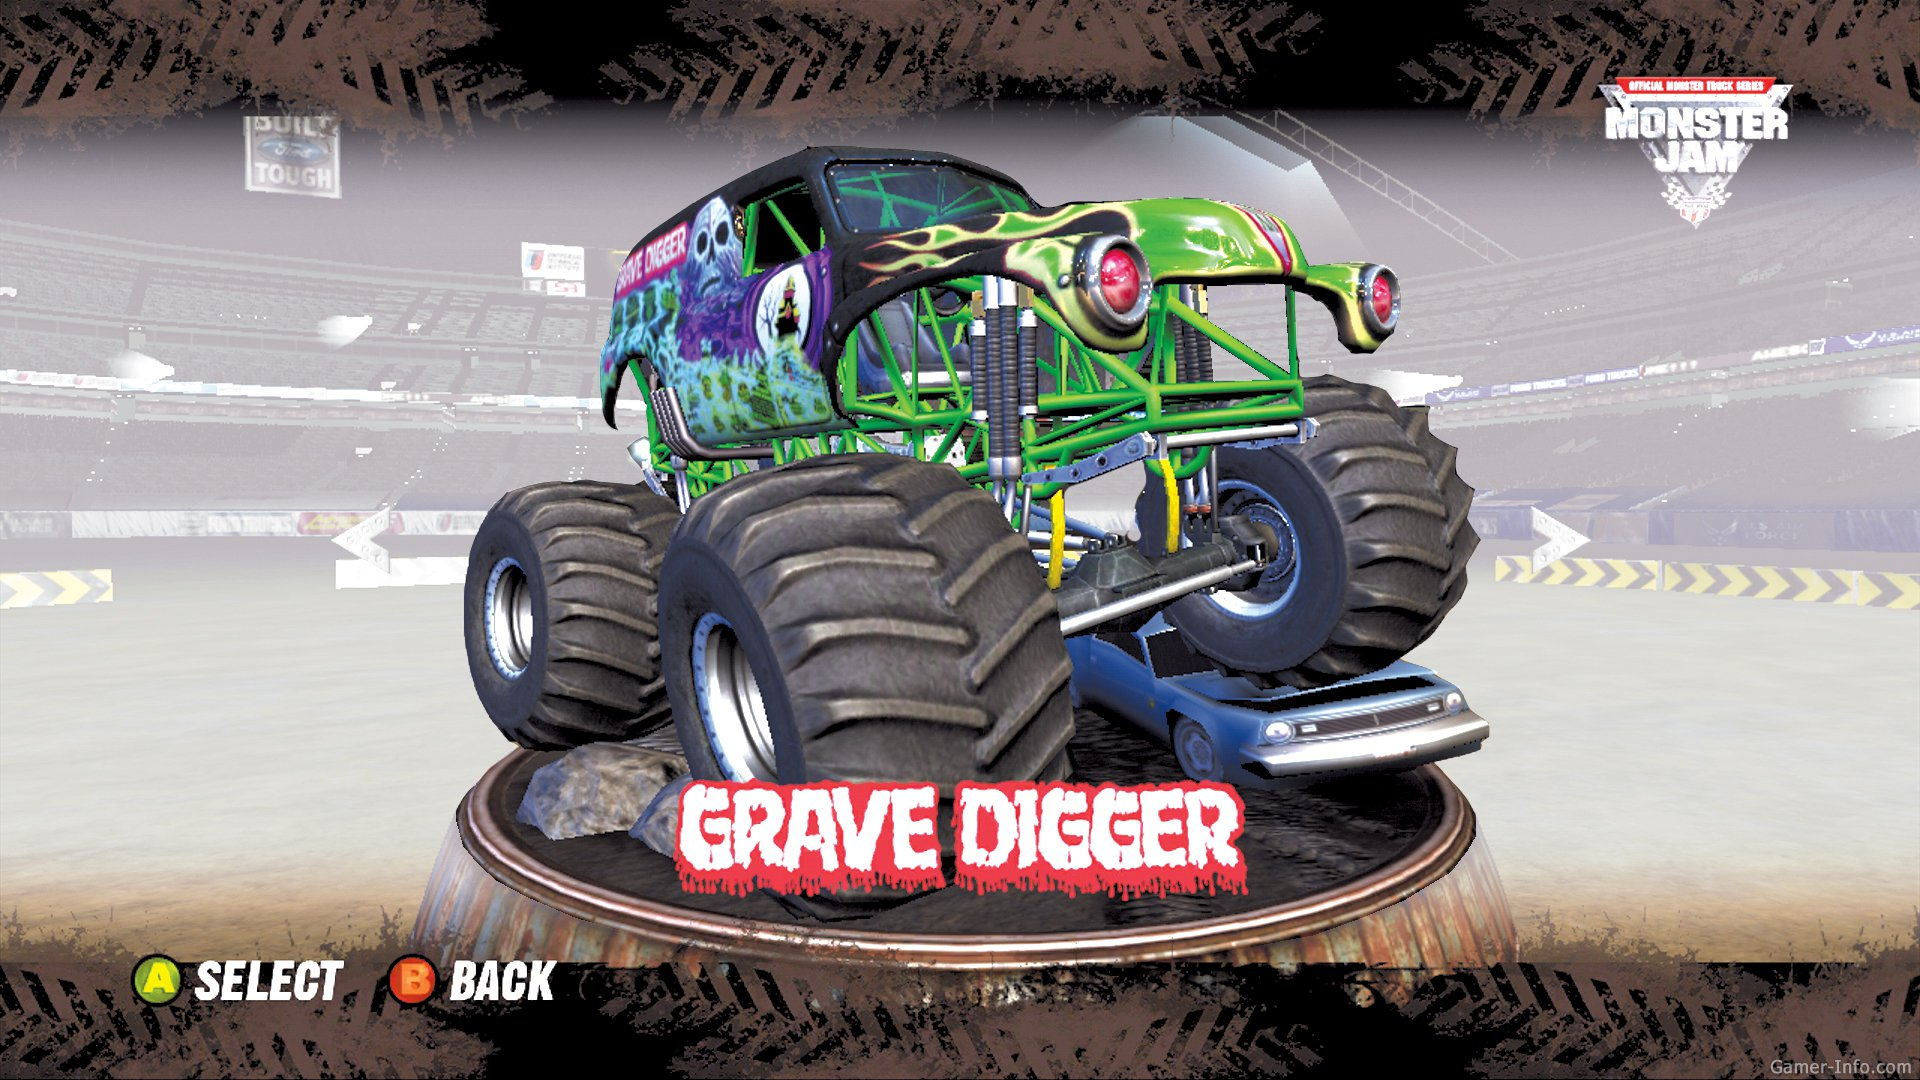 Monster Jam 2007 Video Game